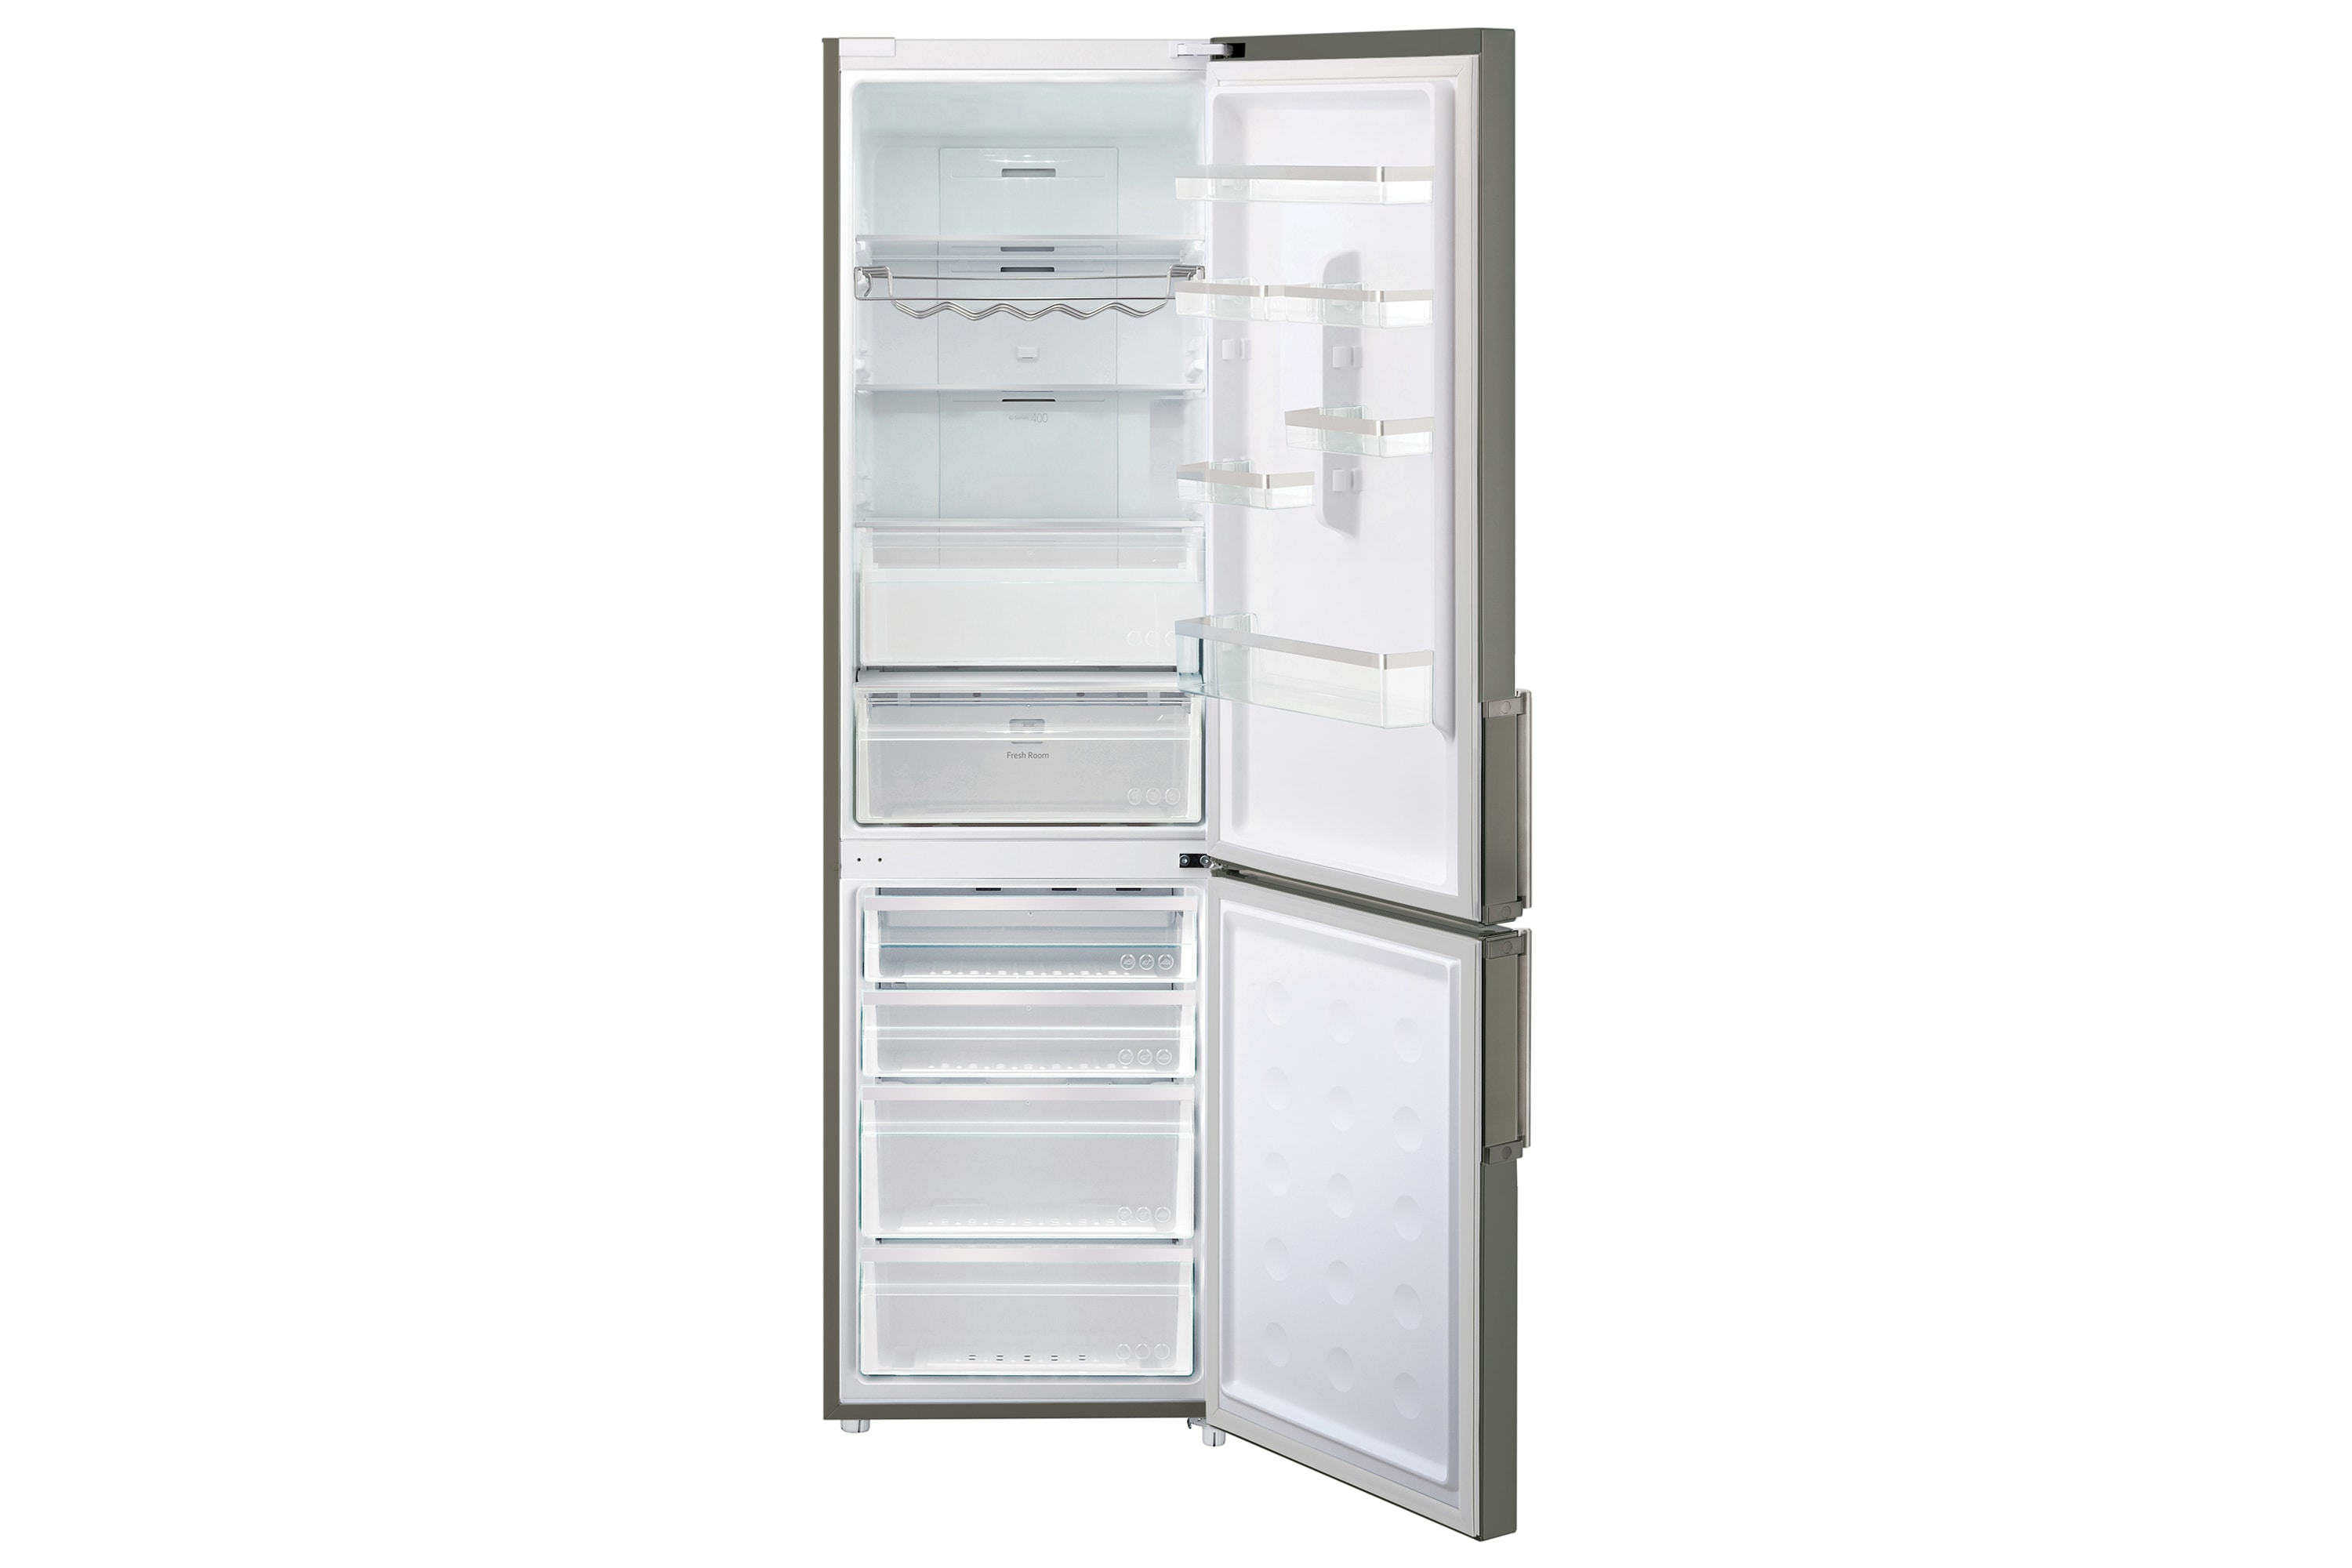 RL60GZEMG G-Series Fridge Freezer Front Open Grey